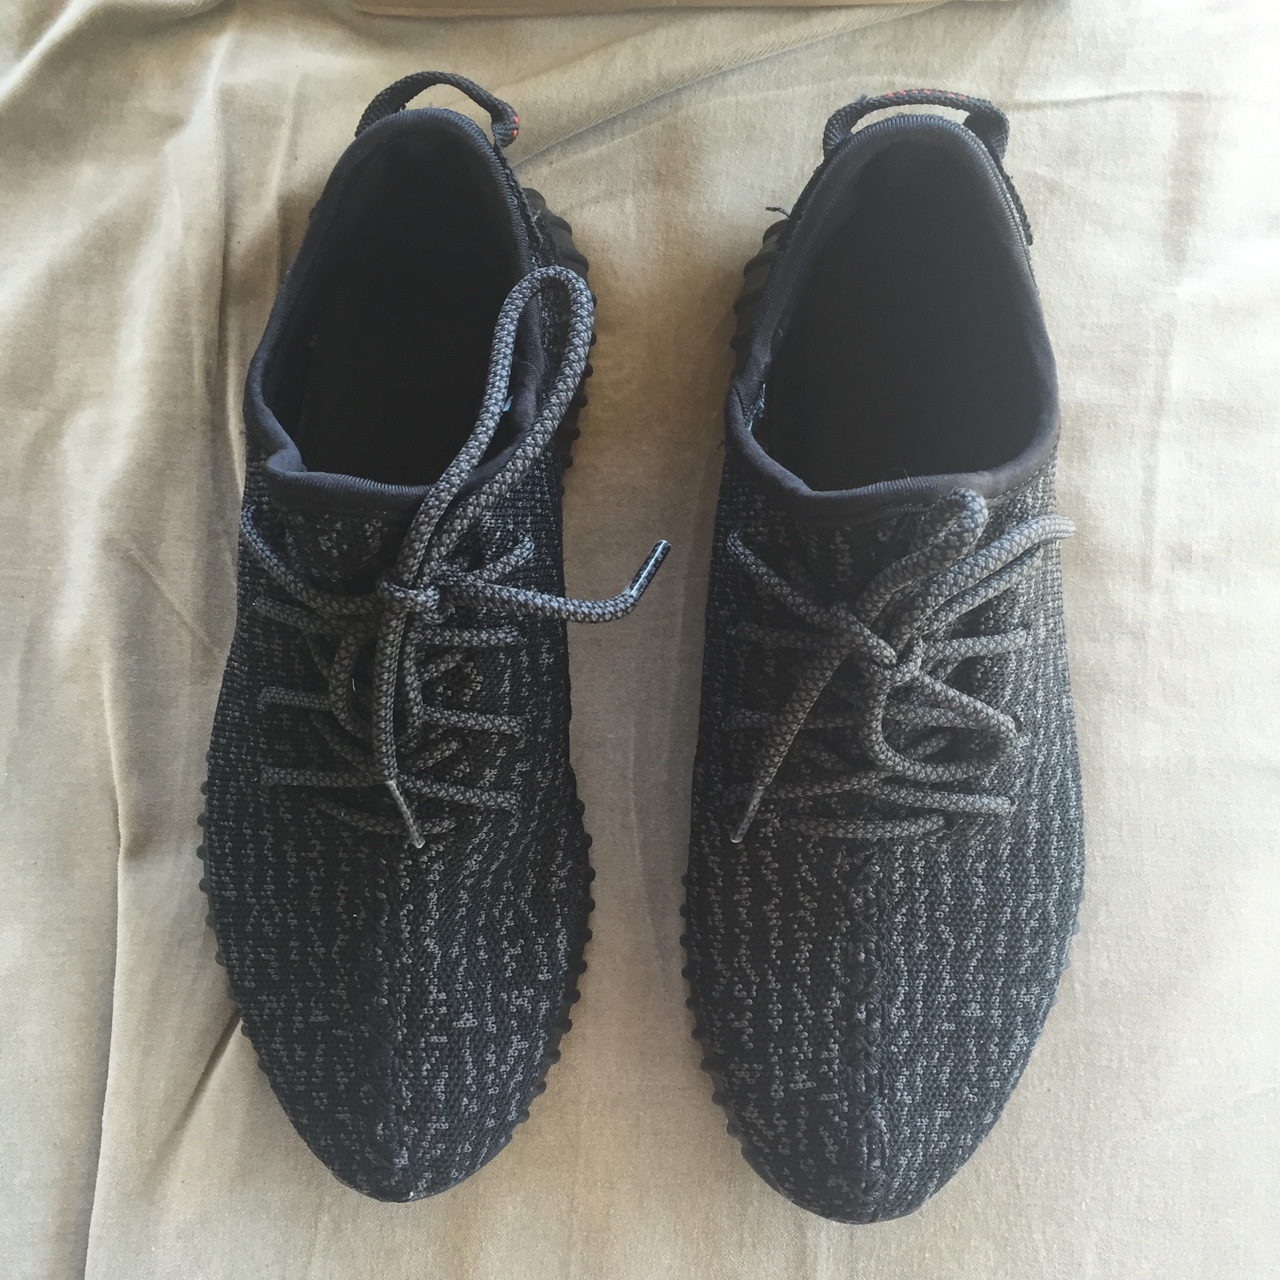 Mens Womens Shoes Adidas Yeezy Boost 350 Pirate Depop